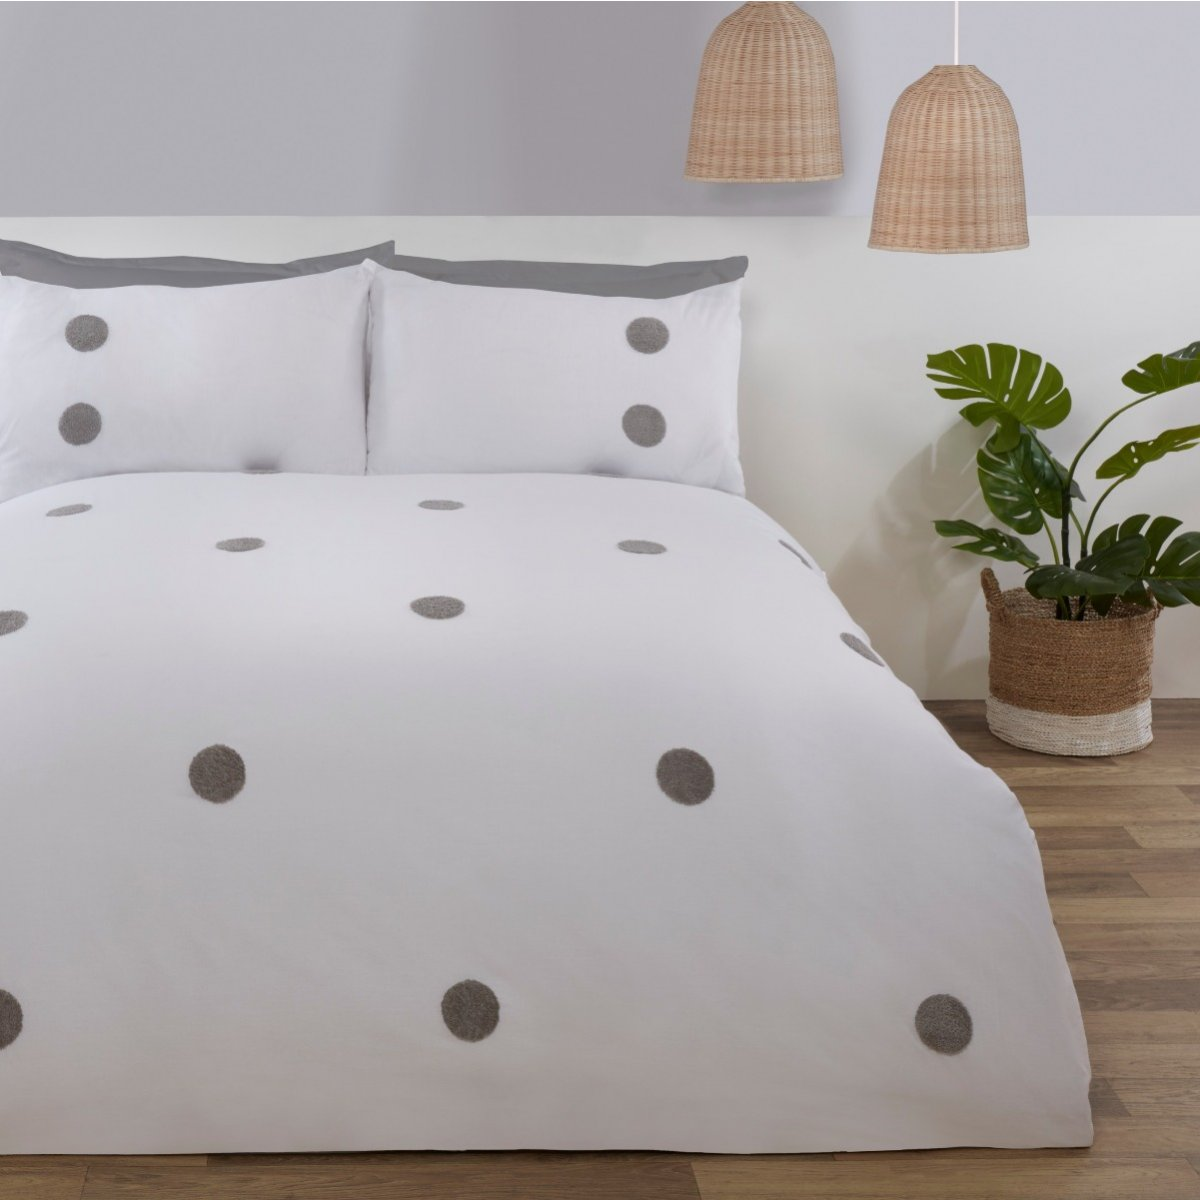 Embroidered Circles White Bedding - Duvet Cover and Pillowcase Set